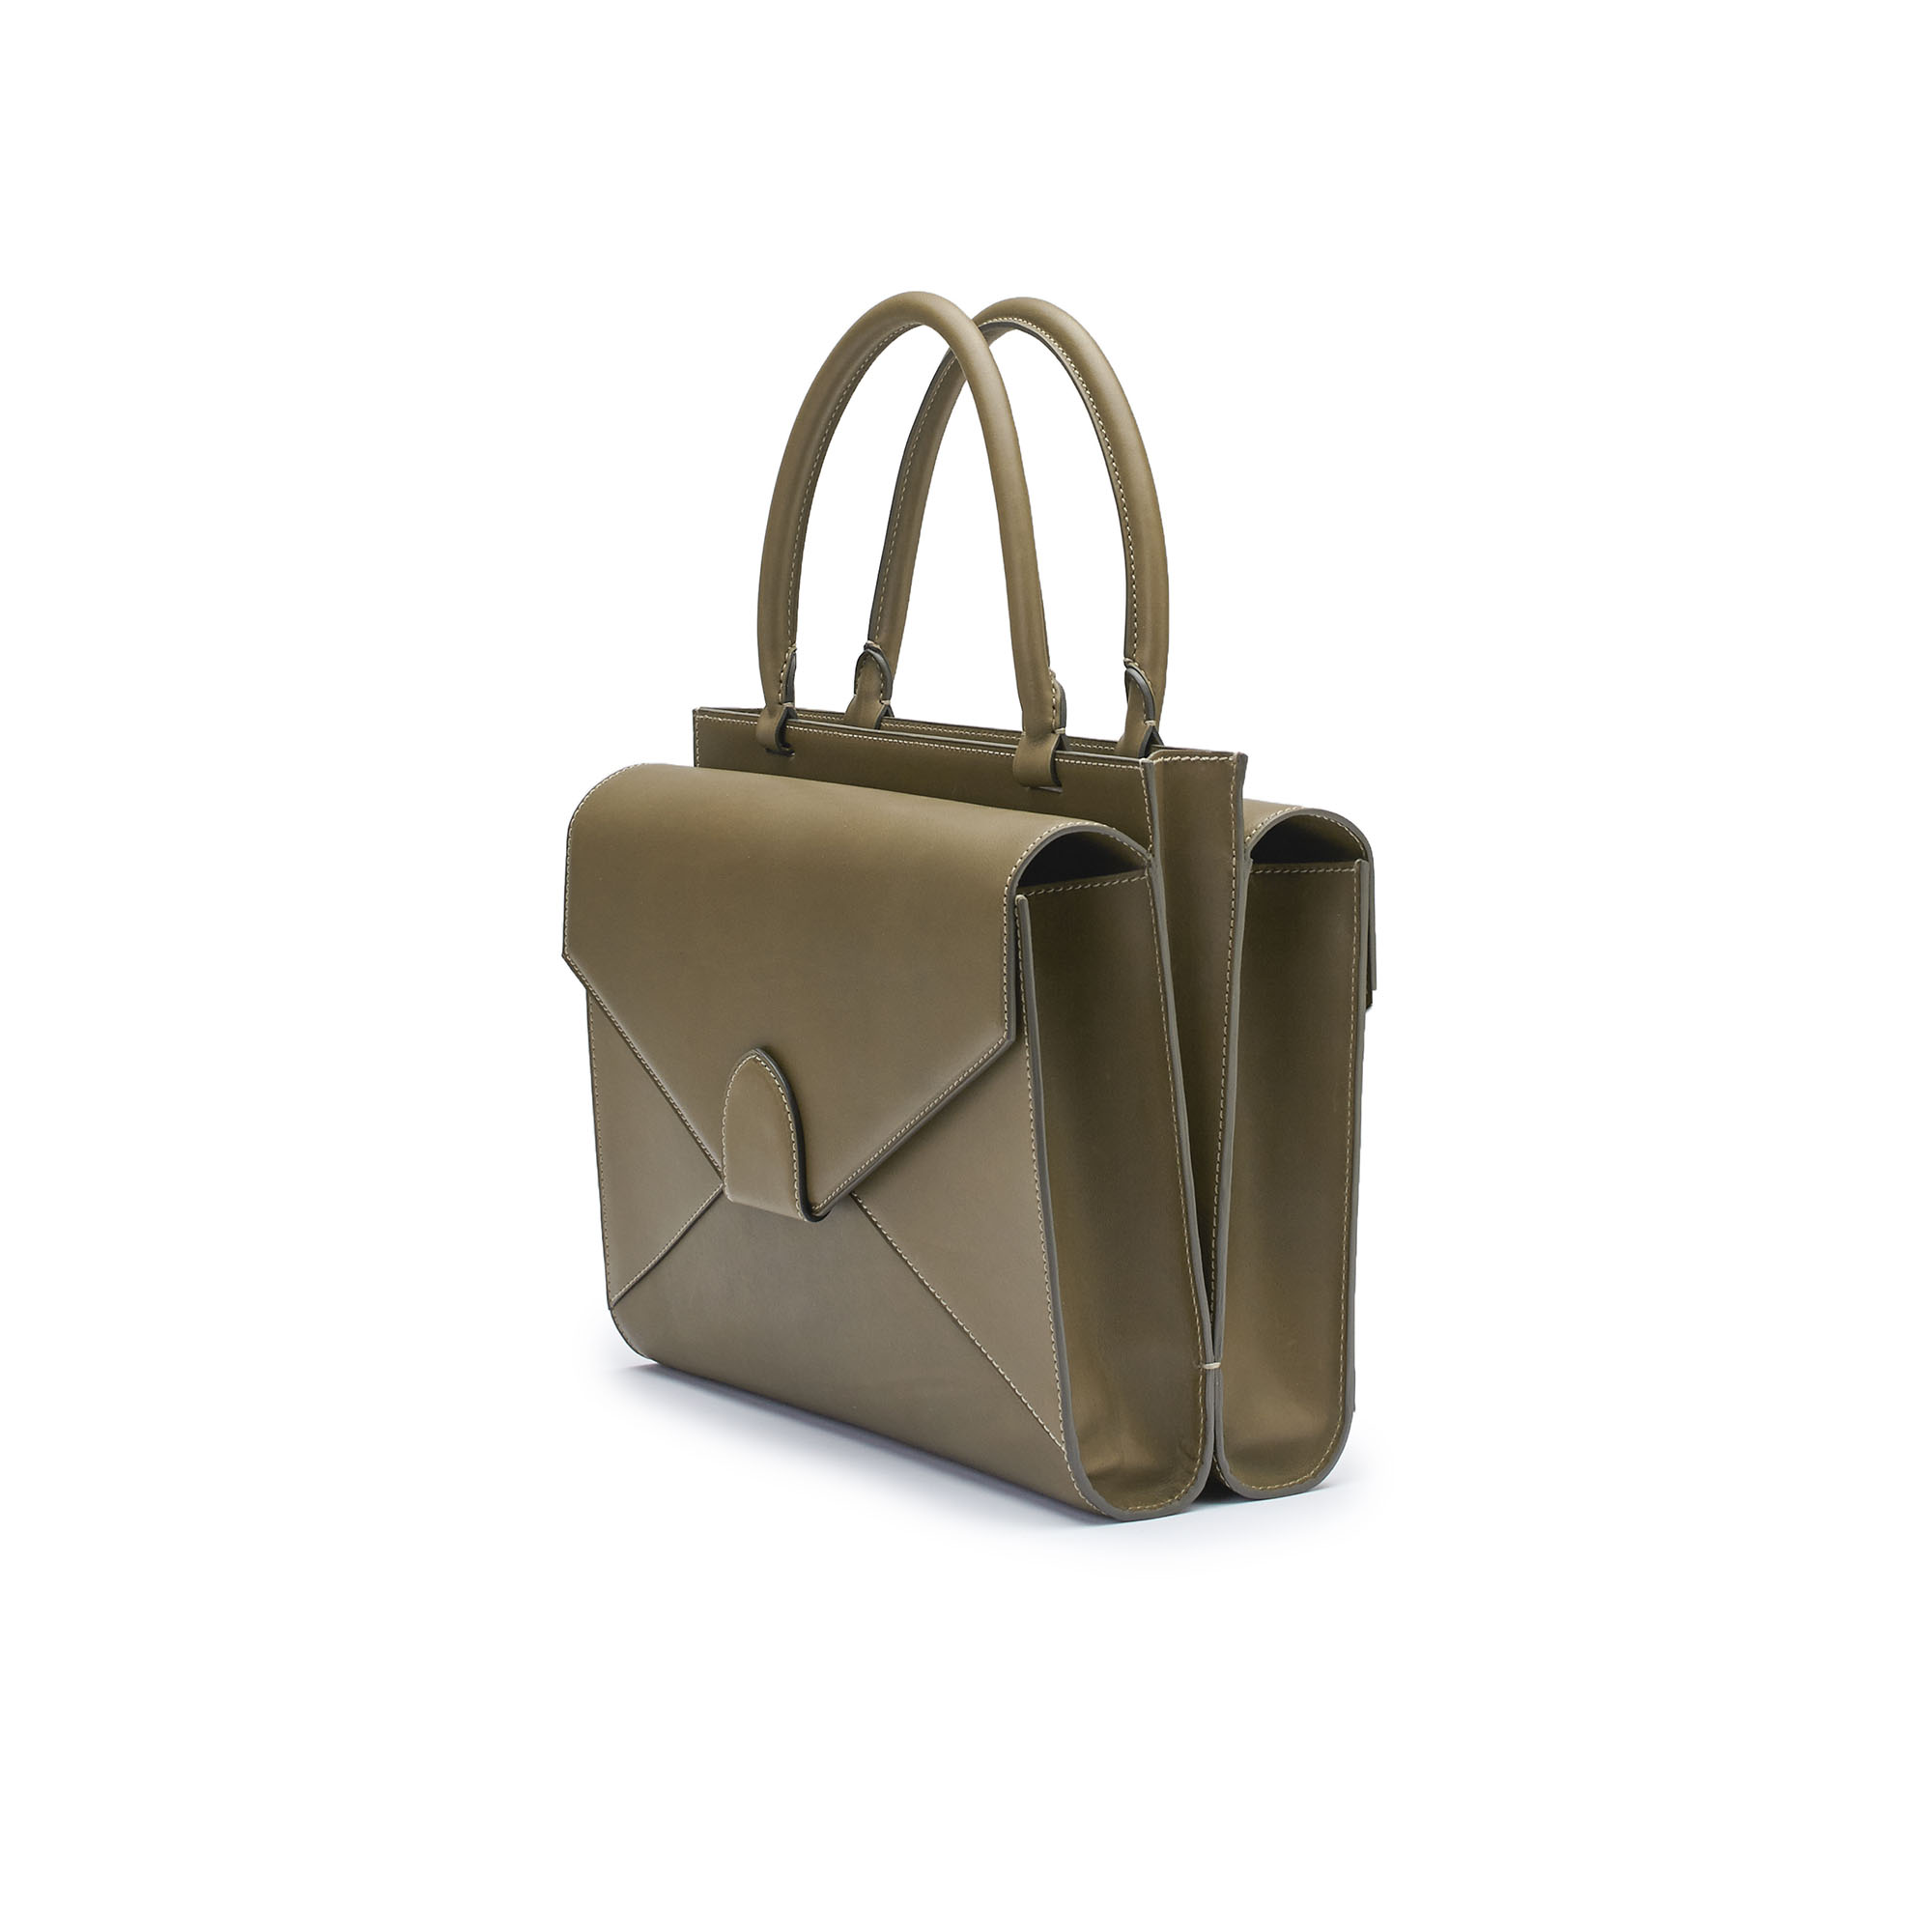 The military green french calf Double Dafne bag by Bertoni 1949 02